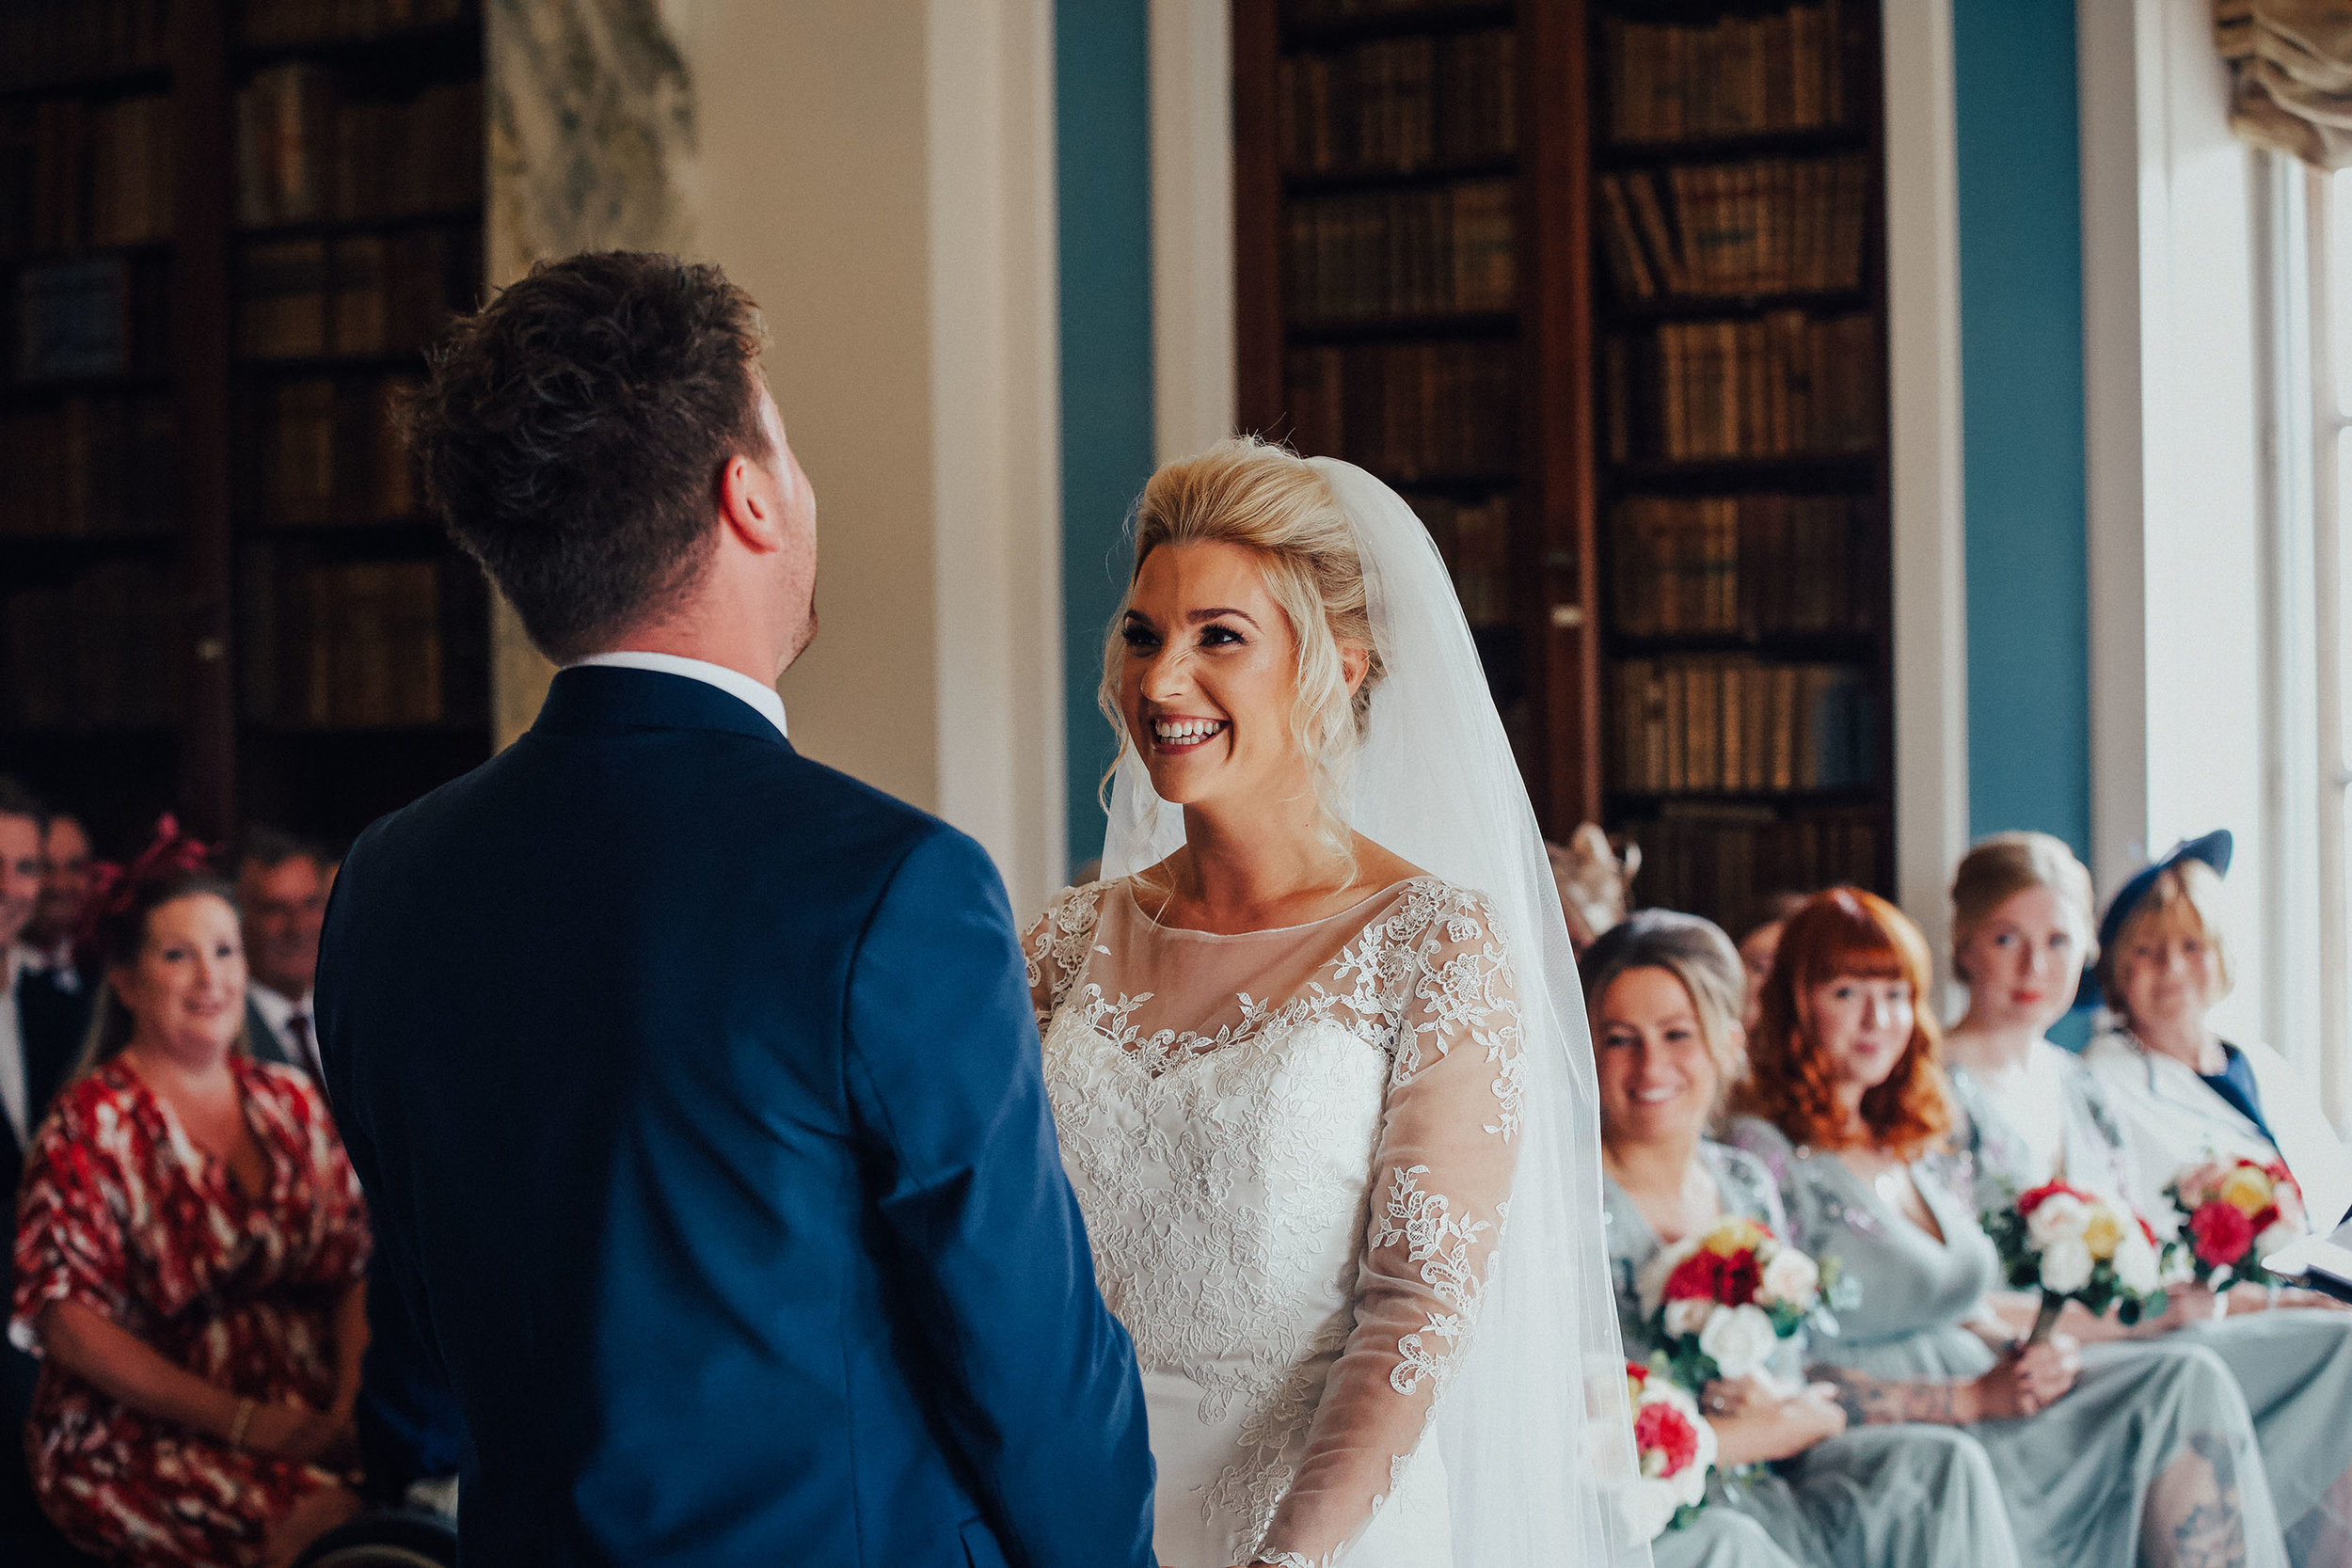 PJ_PHILLIPS_PHOTOGRAPHY_2018_SCOTLAND_WEDDING_PHOTOOGRAPHER_170.jpg